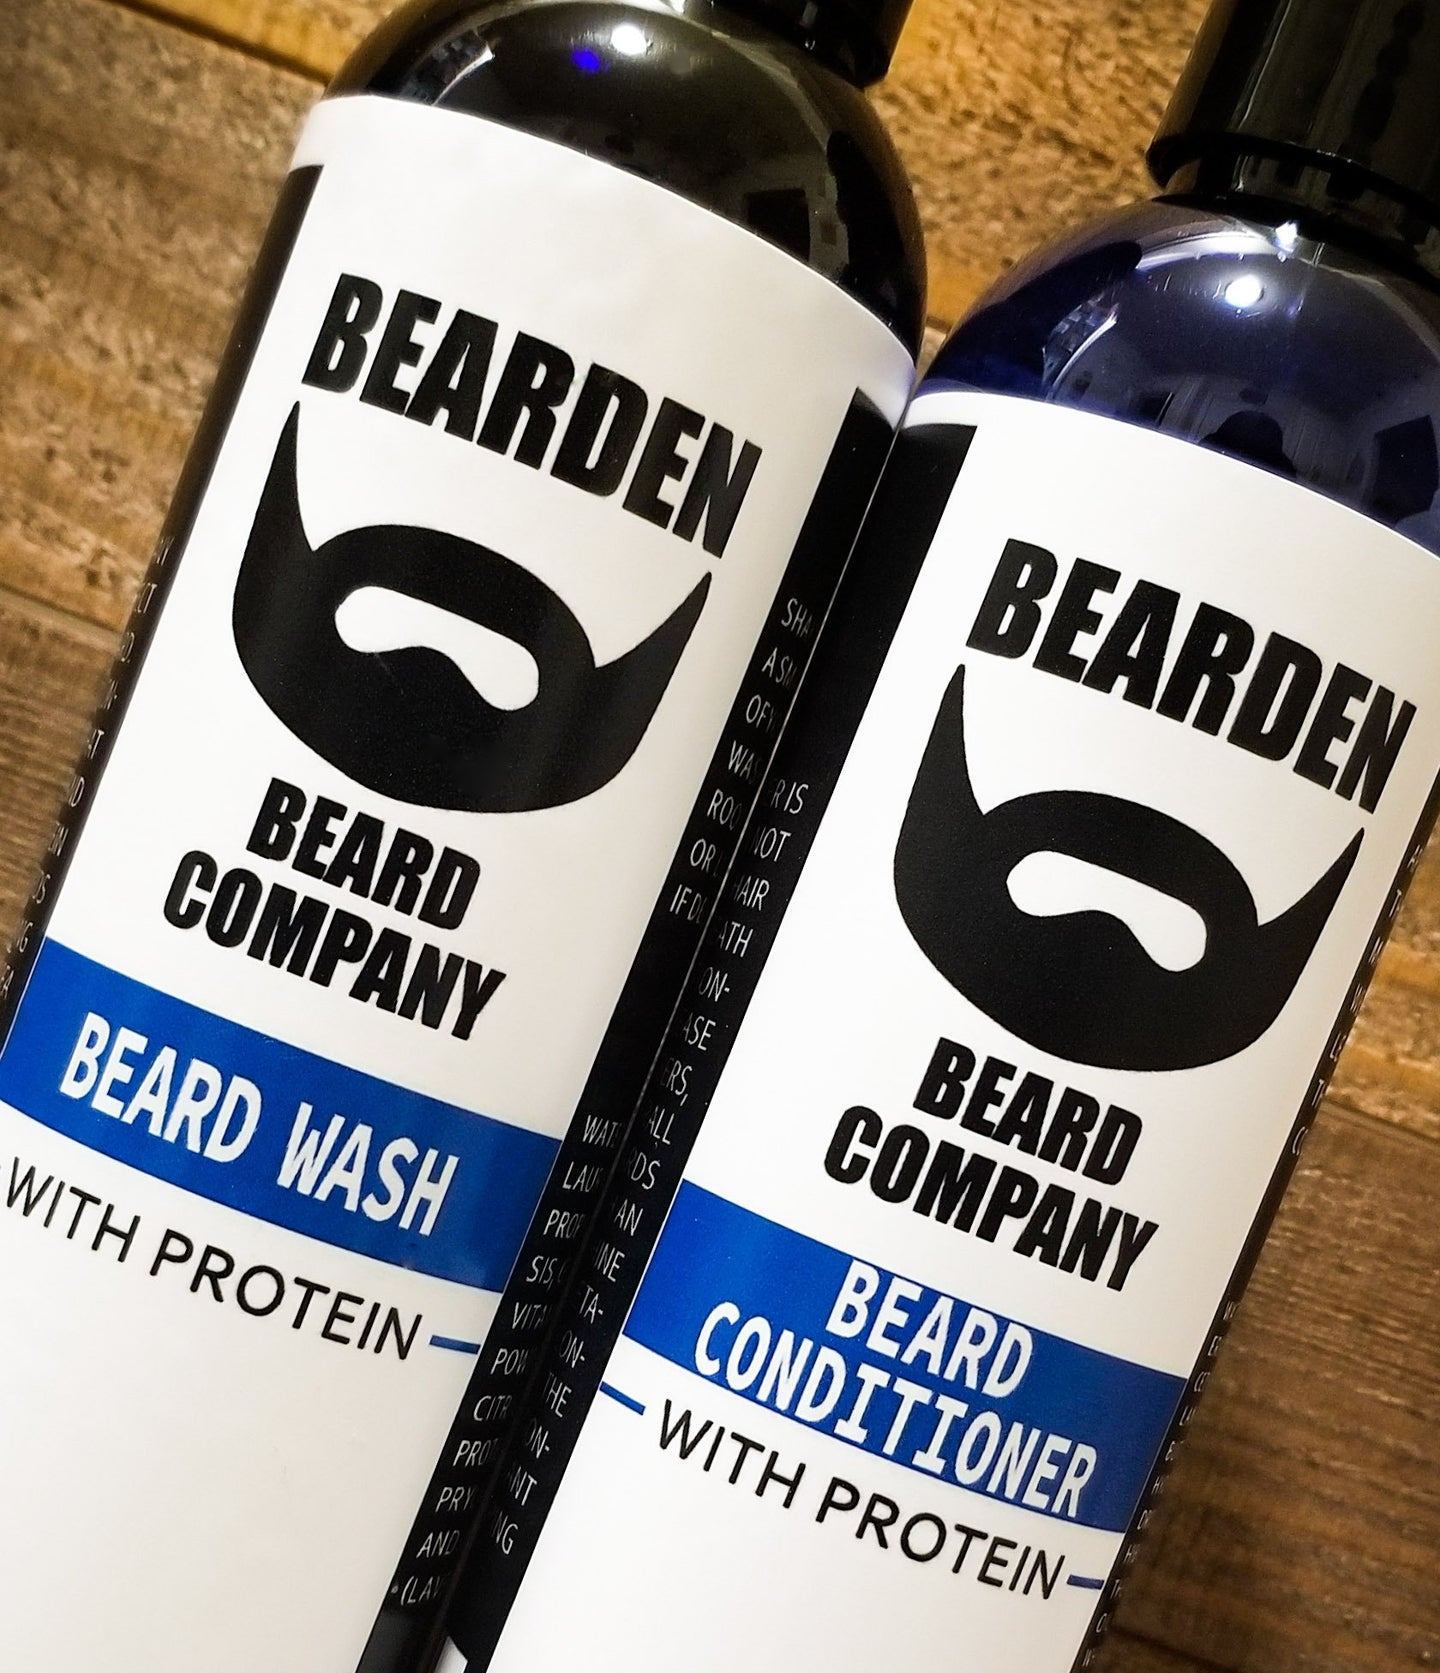 Beard Wash and Beard Conditioner